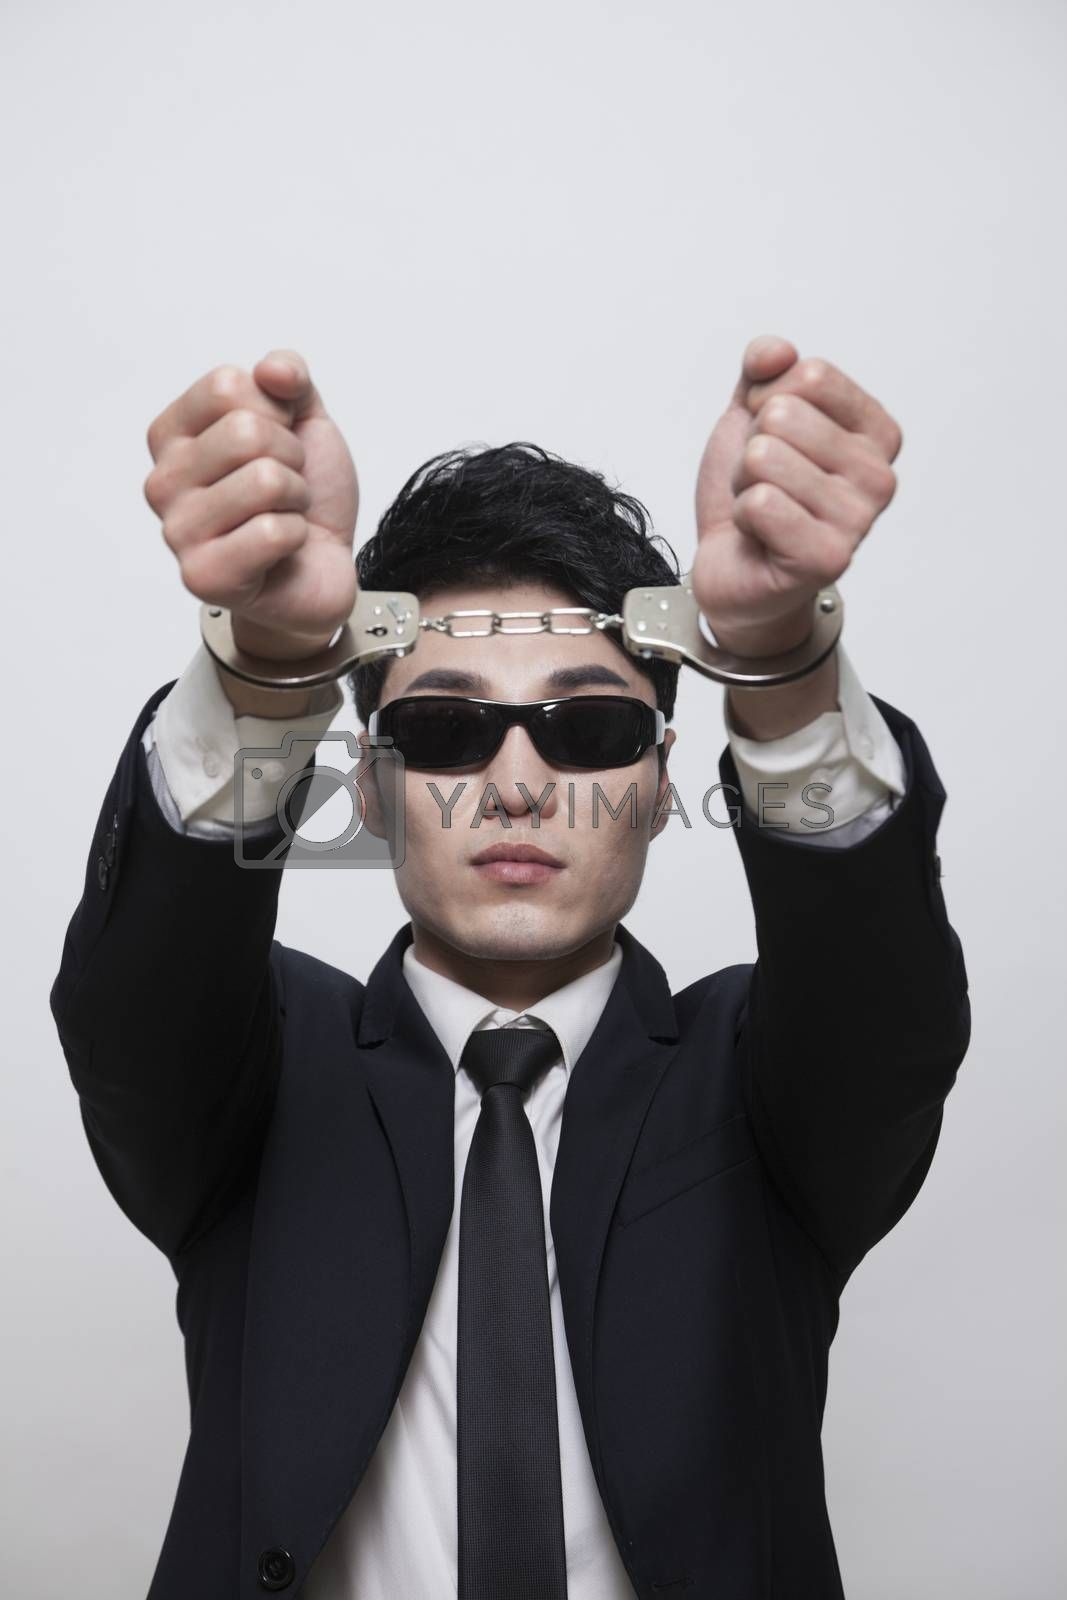 Cool businessman with sunglasses in handcuffs, studio shot